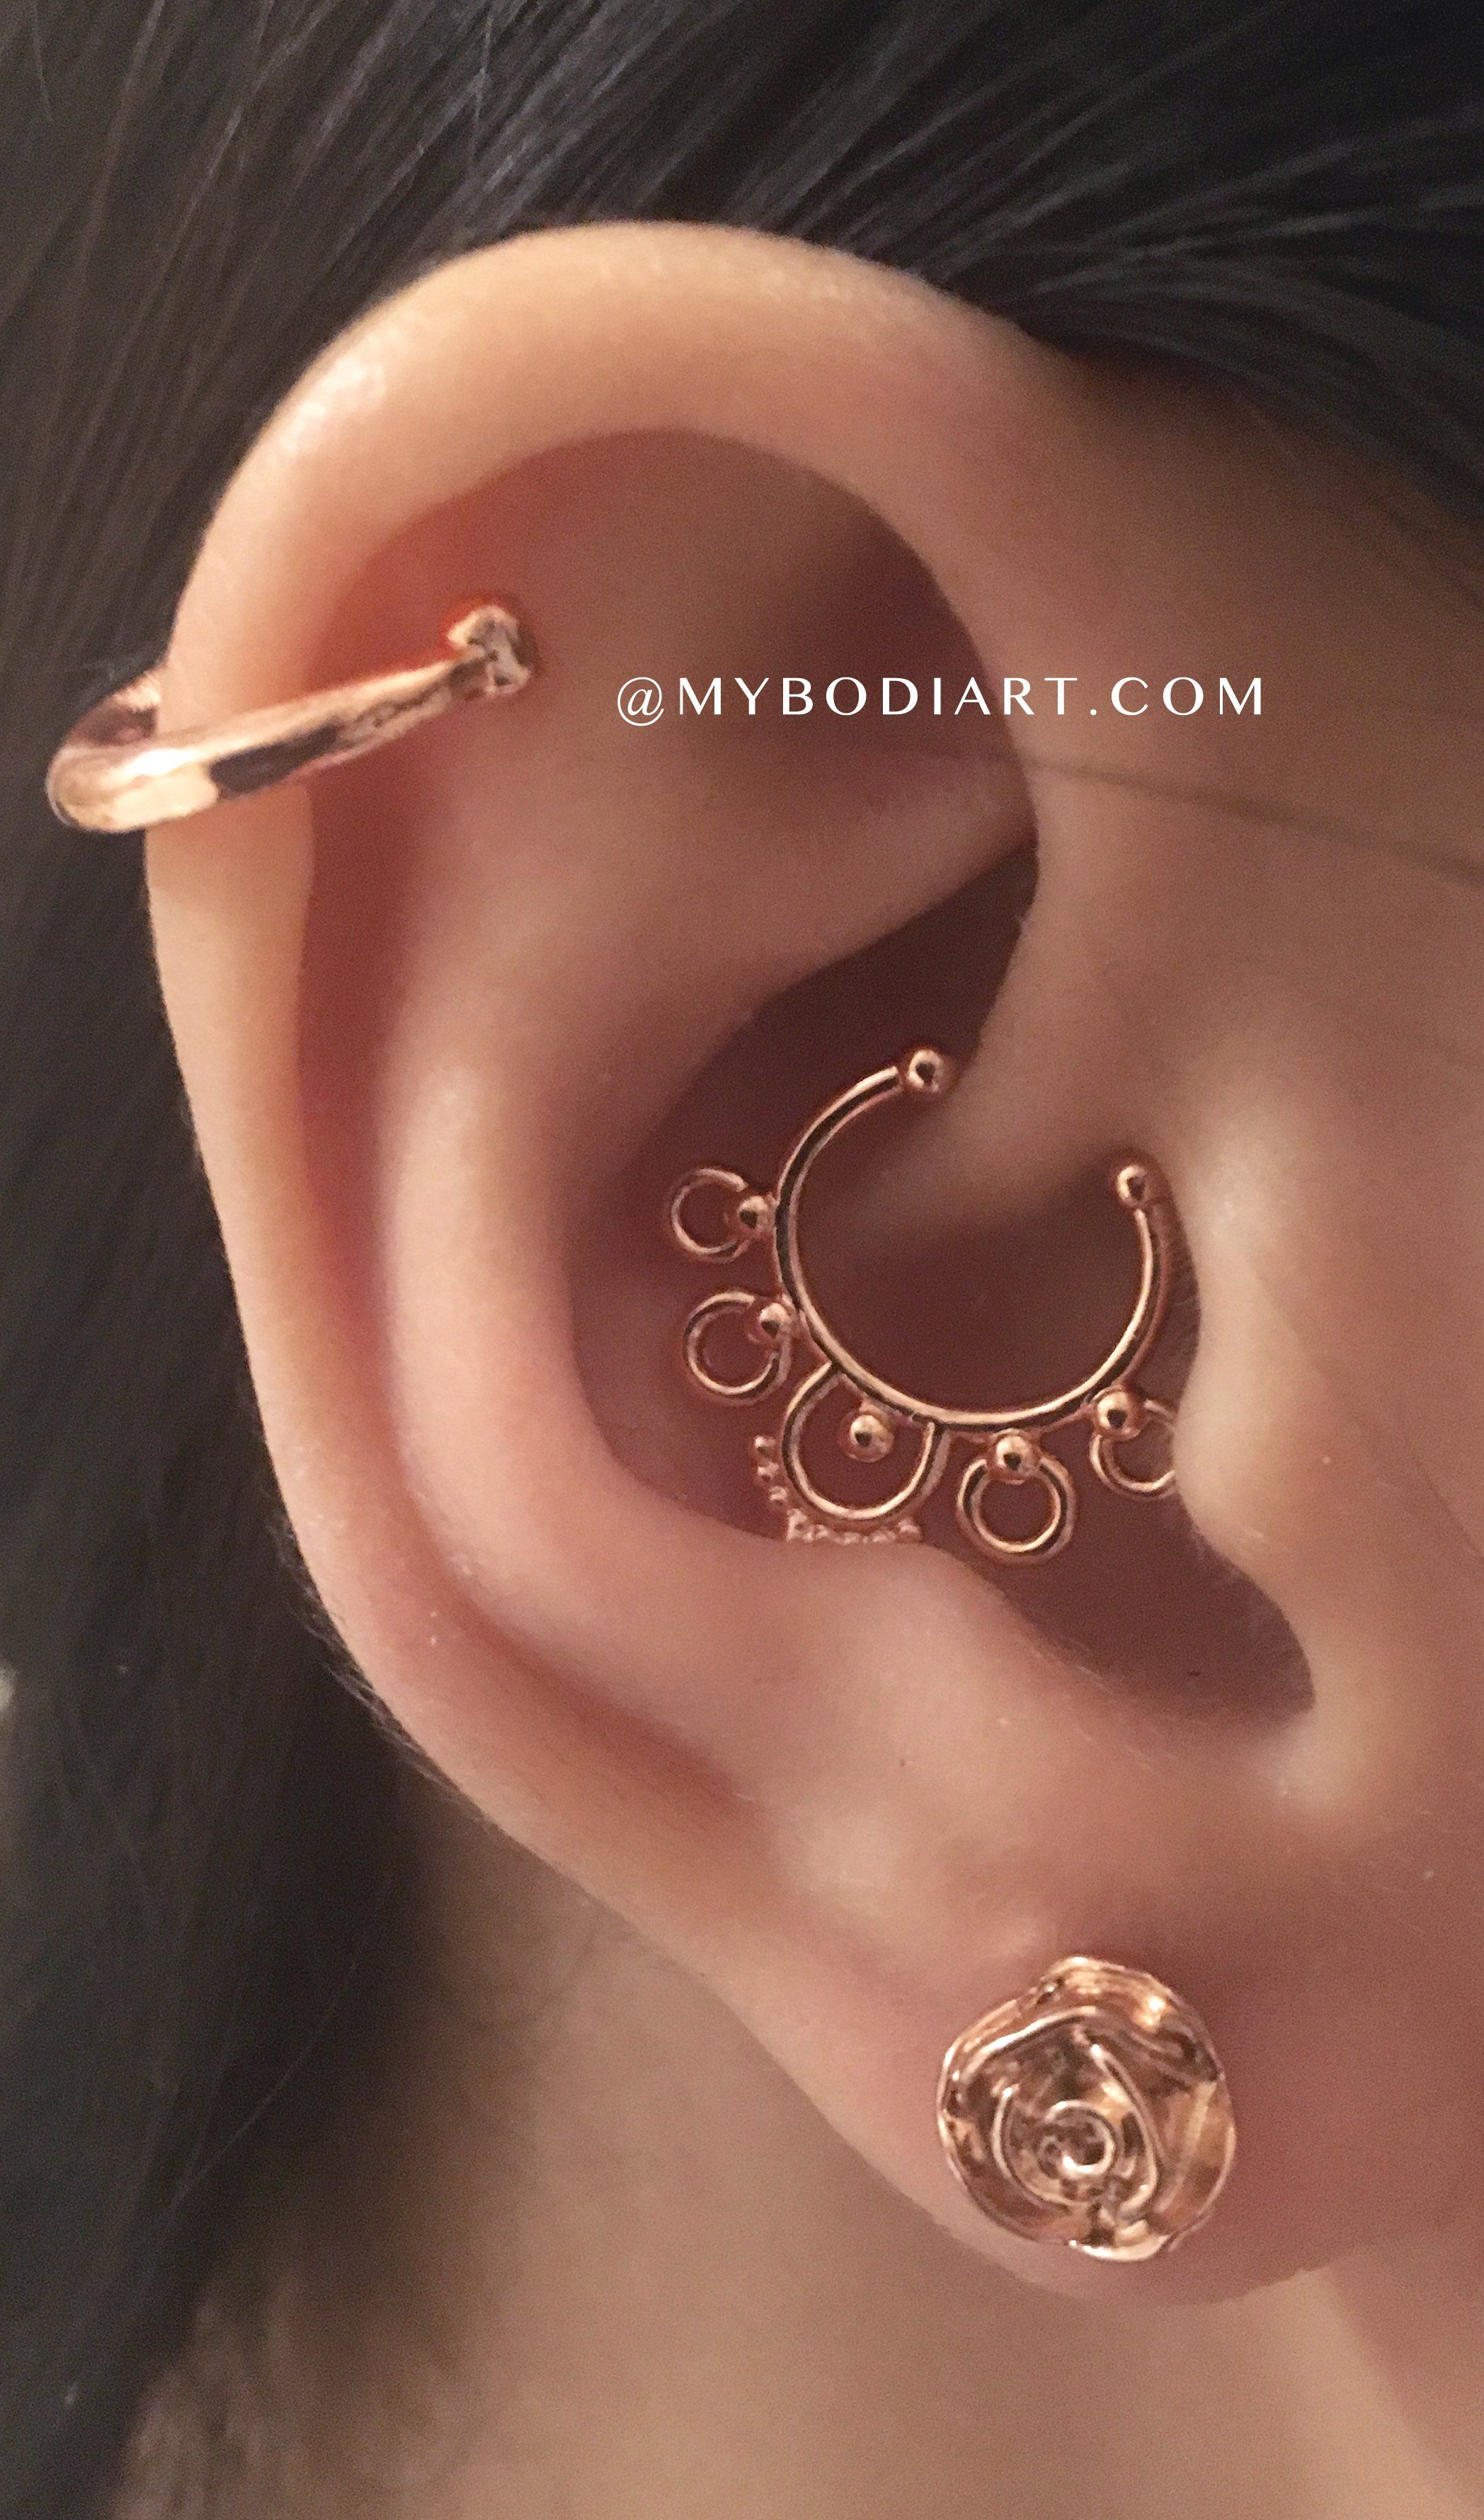 Nose piercing 6mm  Hannah Rose G Barbell Ear Piercing Earring  Products  Pinterest